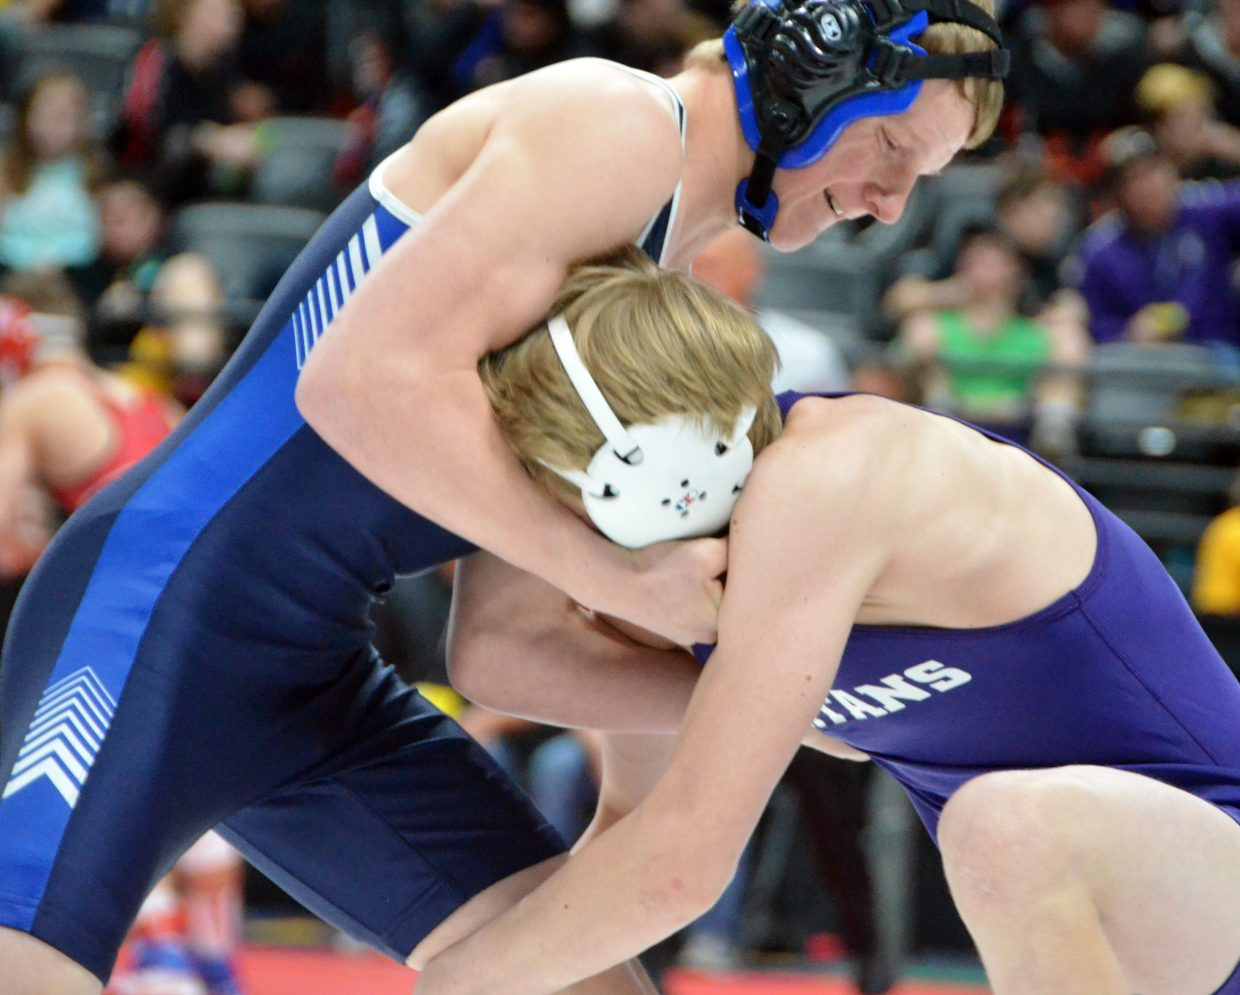 Moffat County High School wrestler isiaih Herod puts up resistance against Salida's Ryan Moltz during the opening round of CHSAA State Championships.